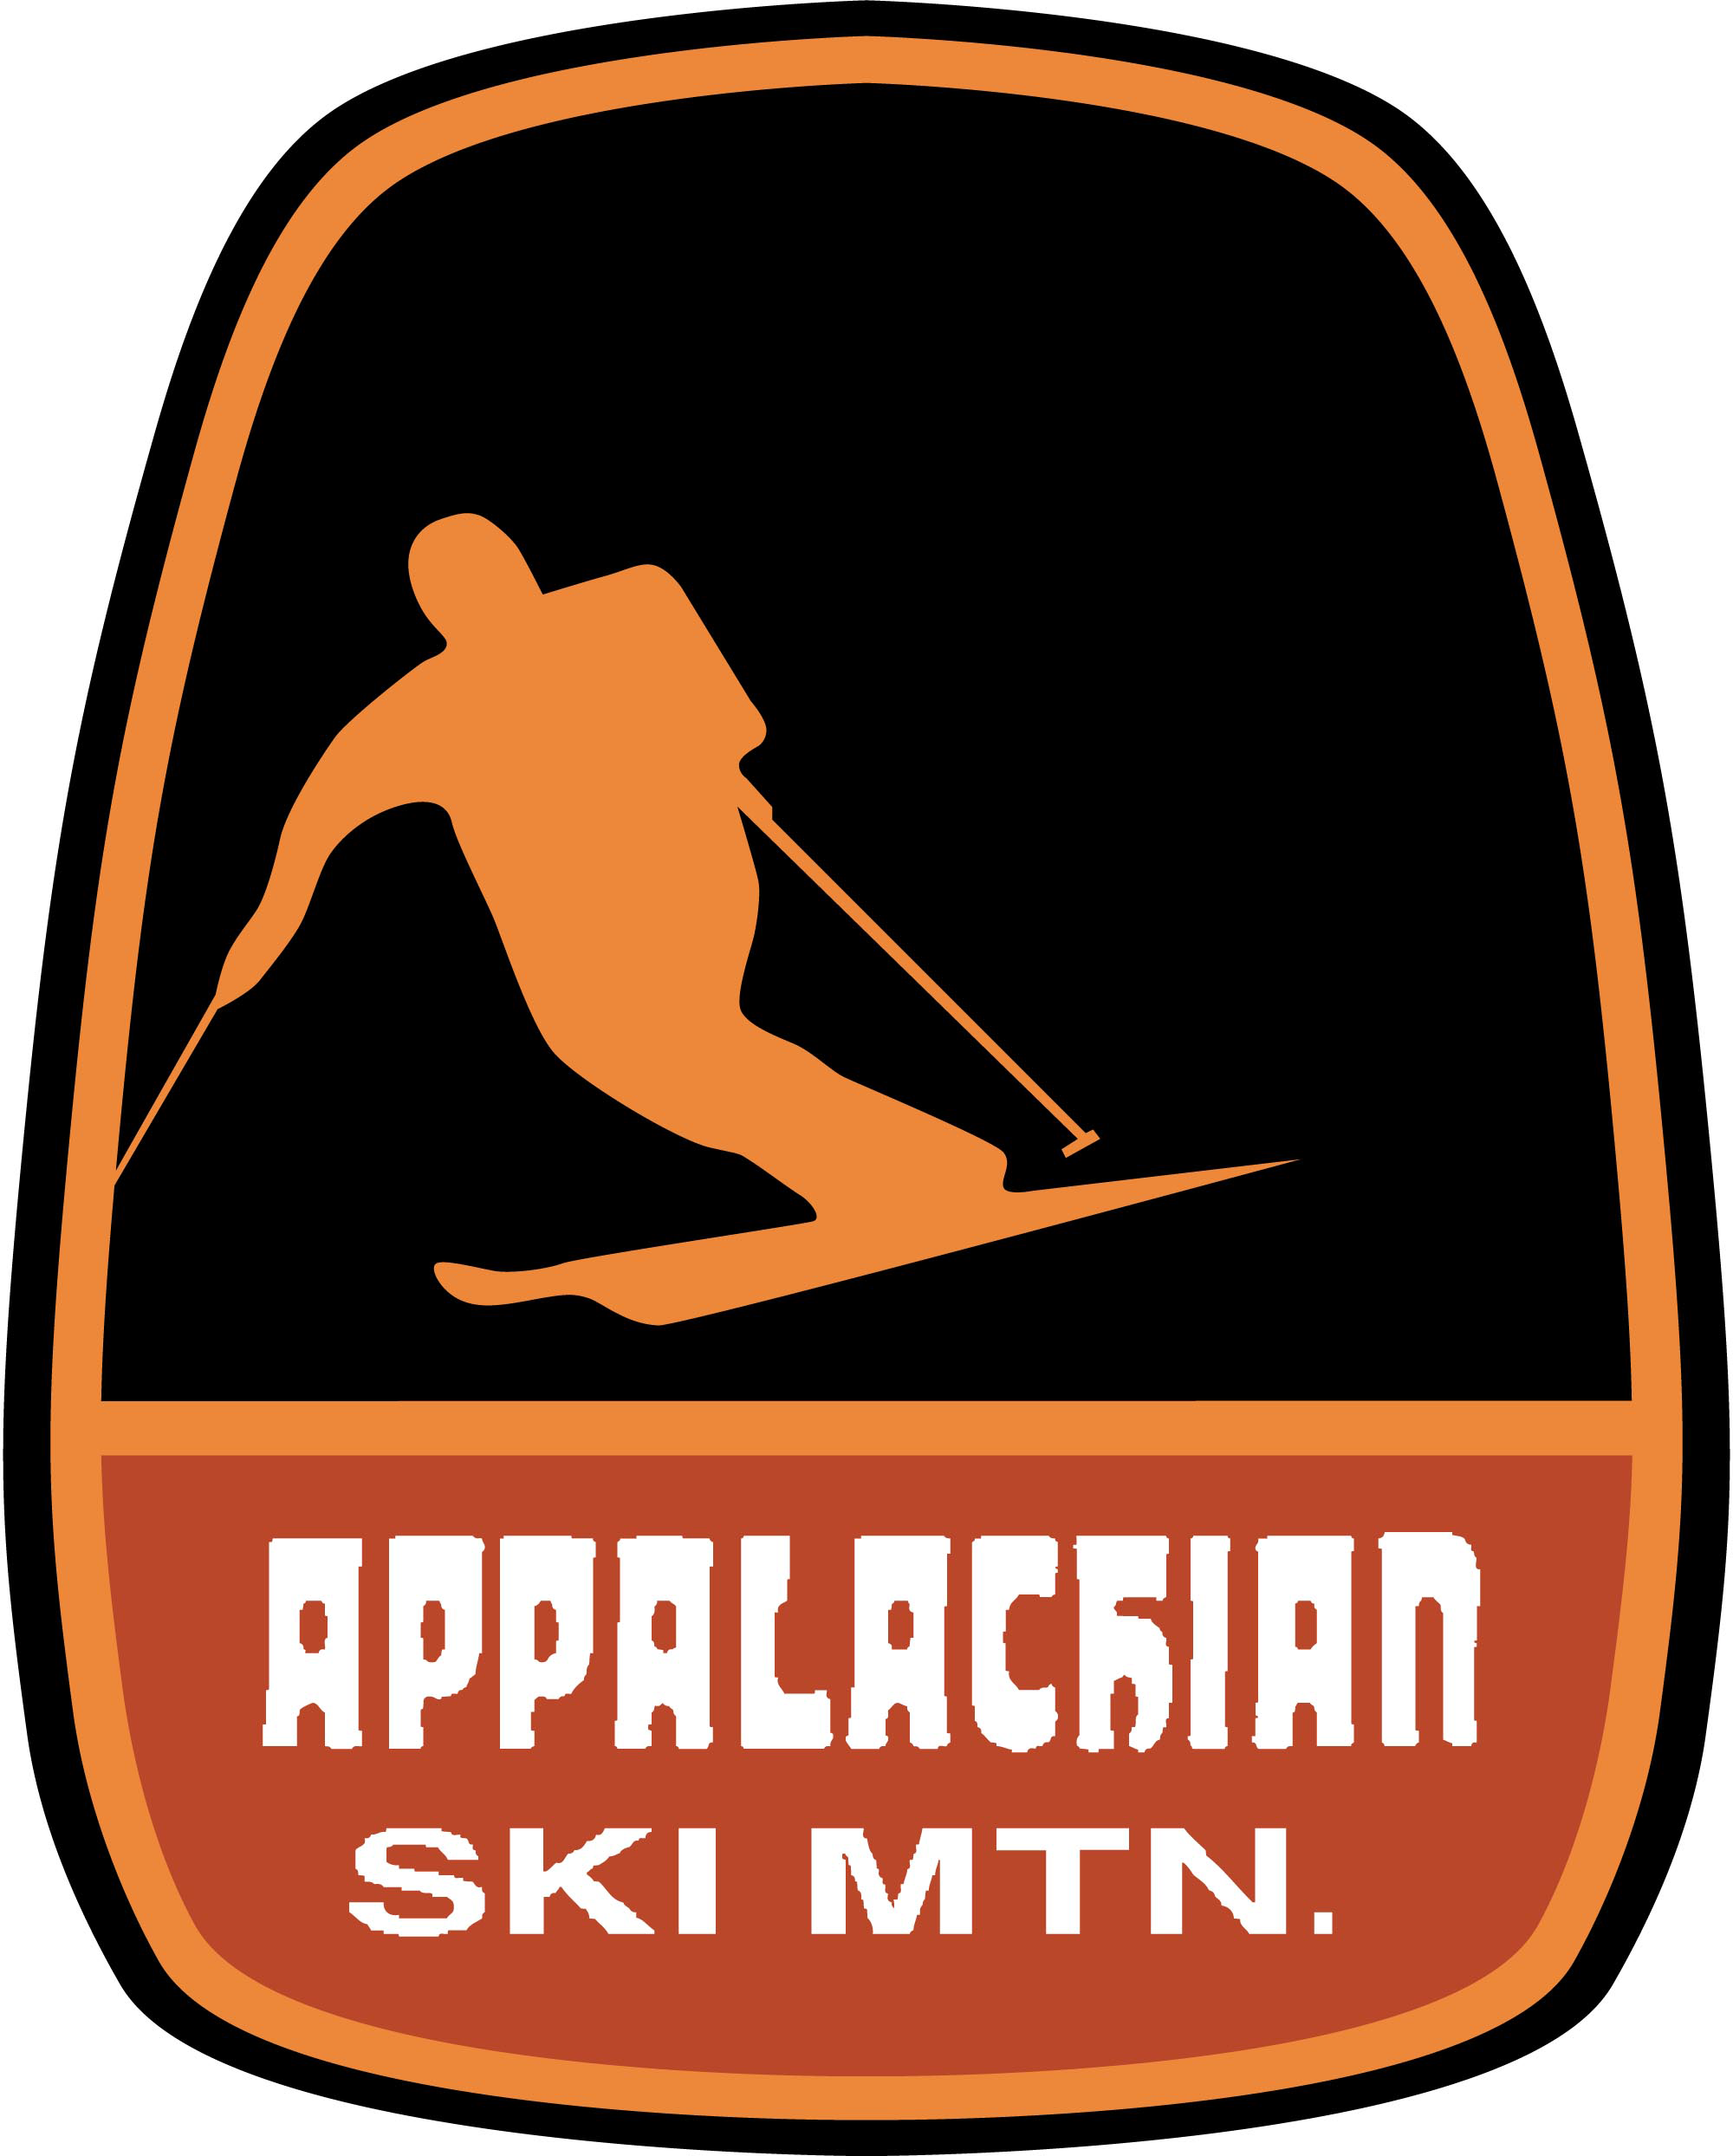 Appalachian Ski Mountain logo